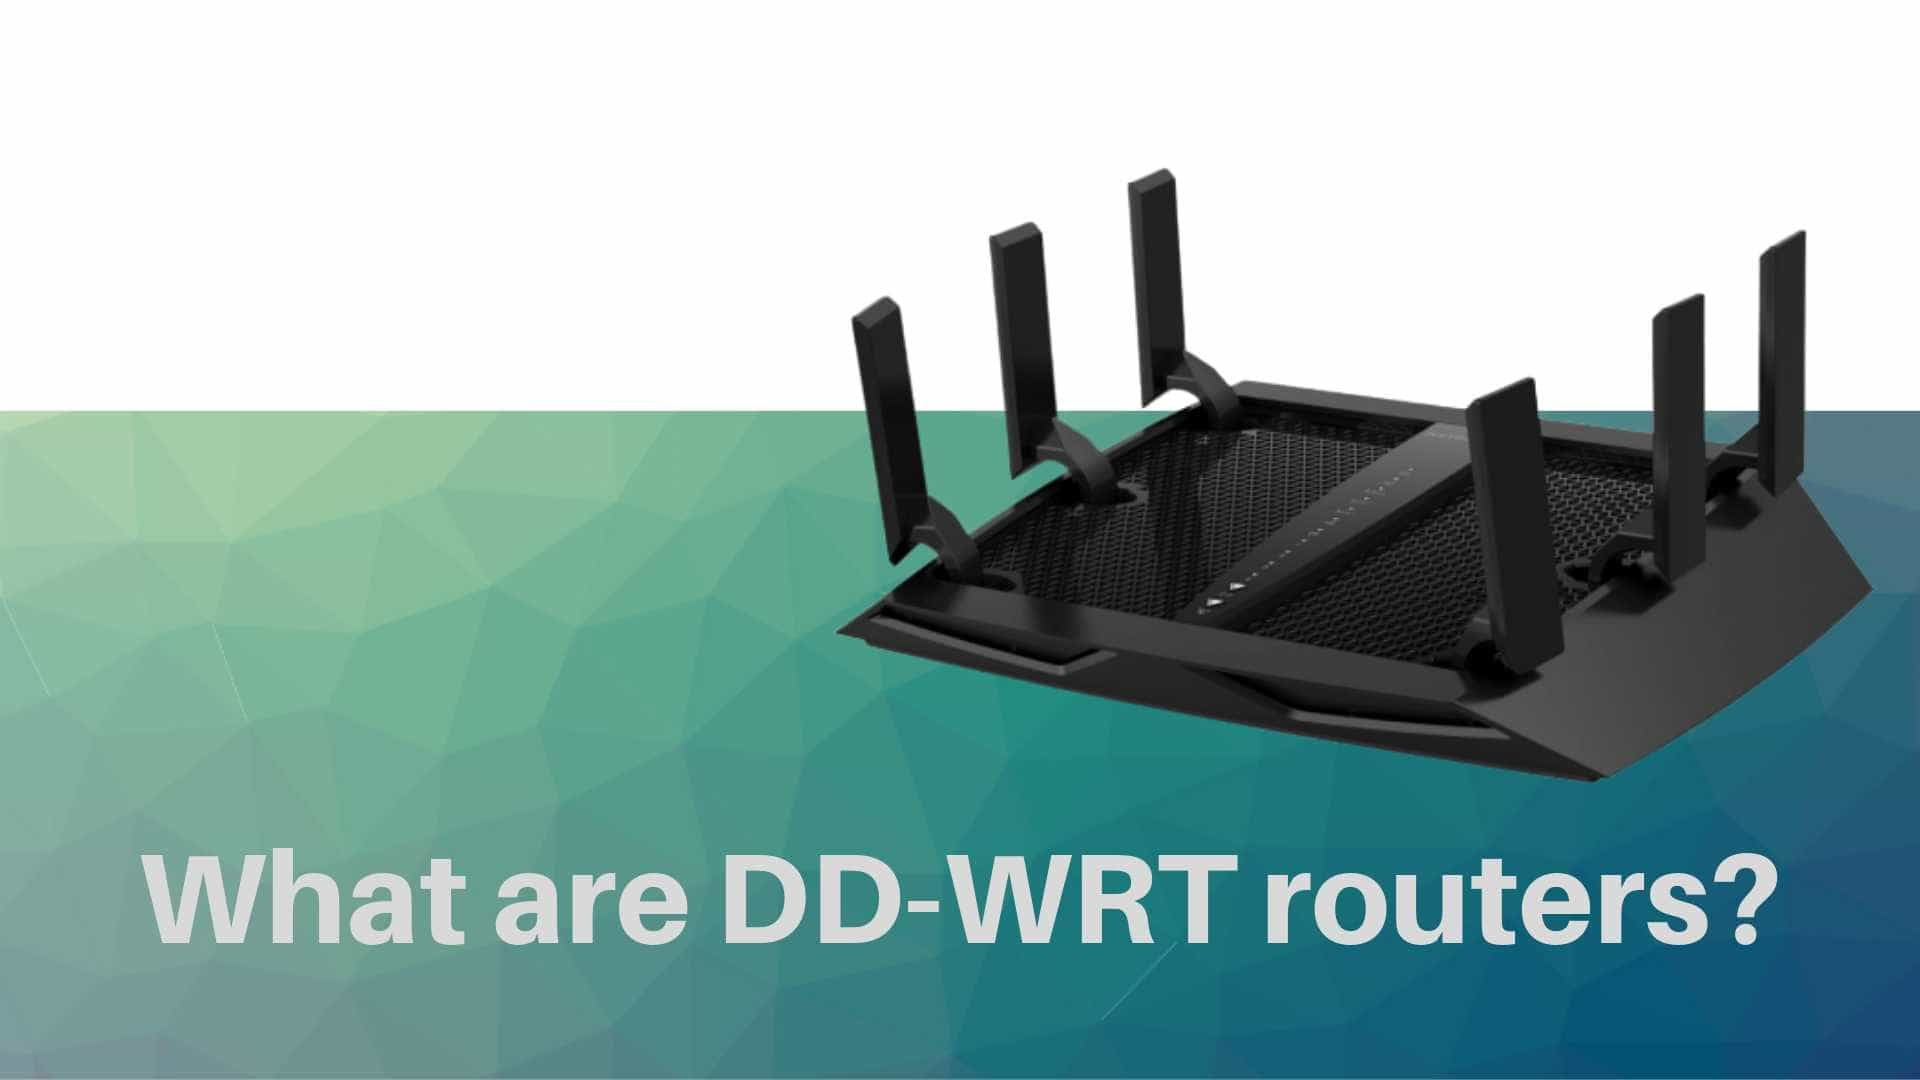 What is a DD-WRT router